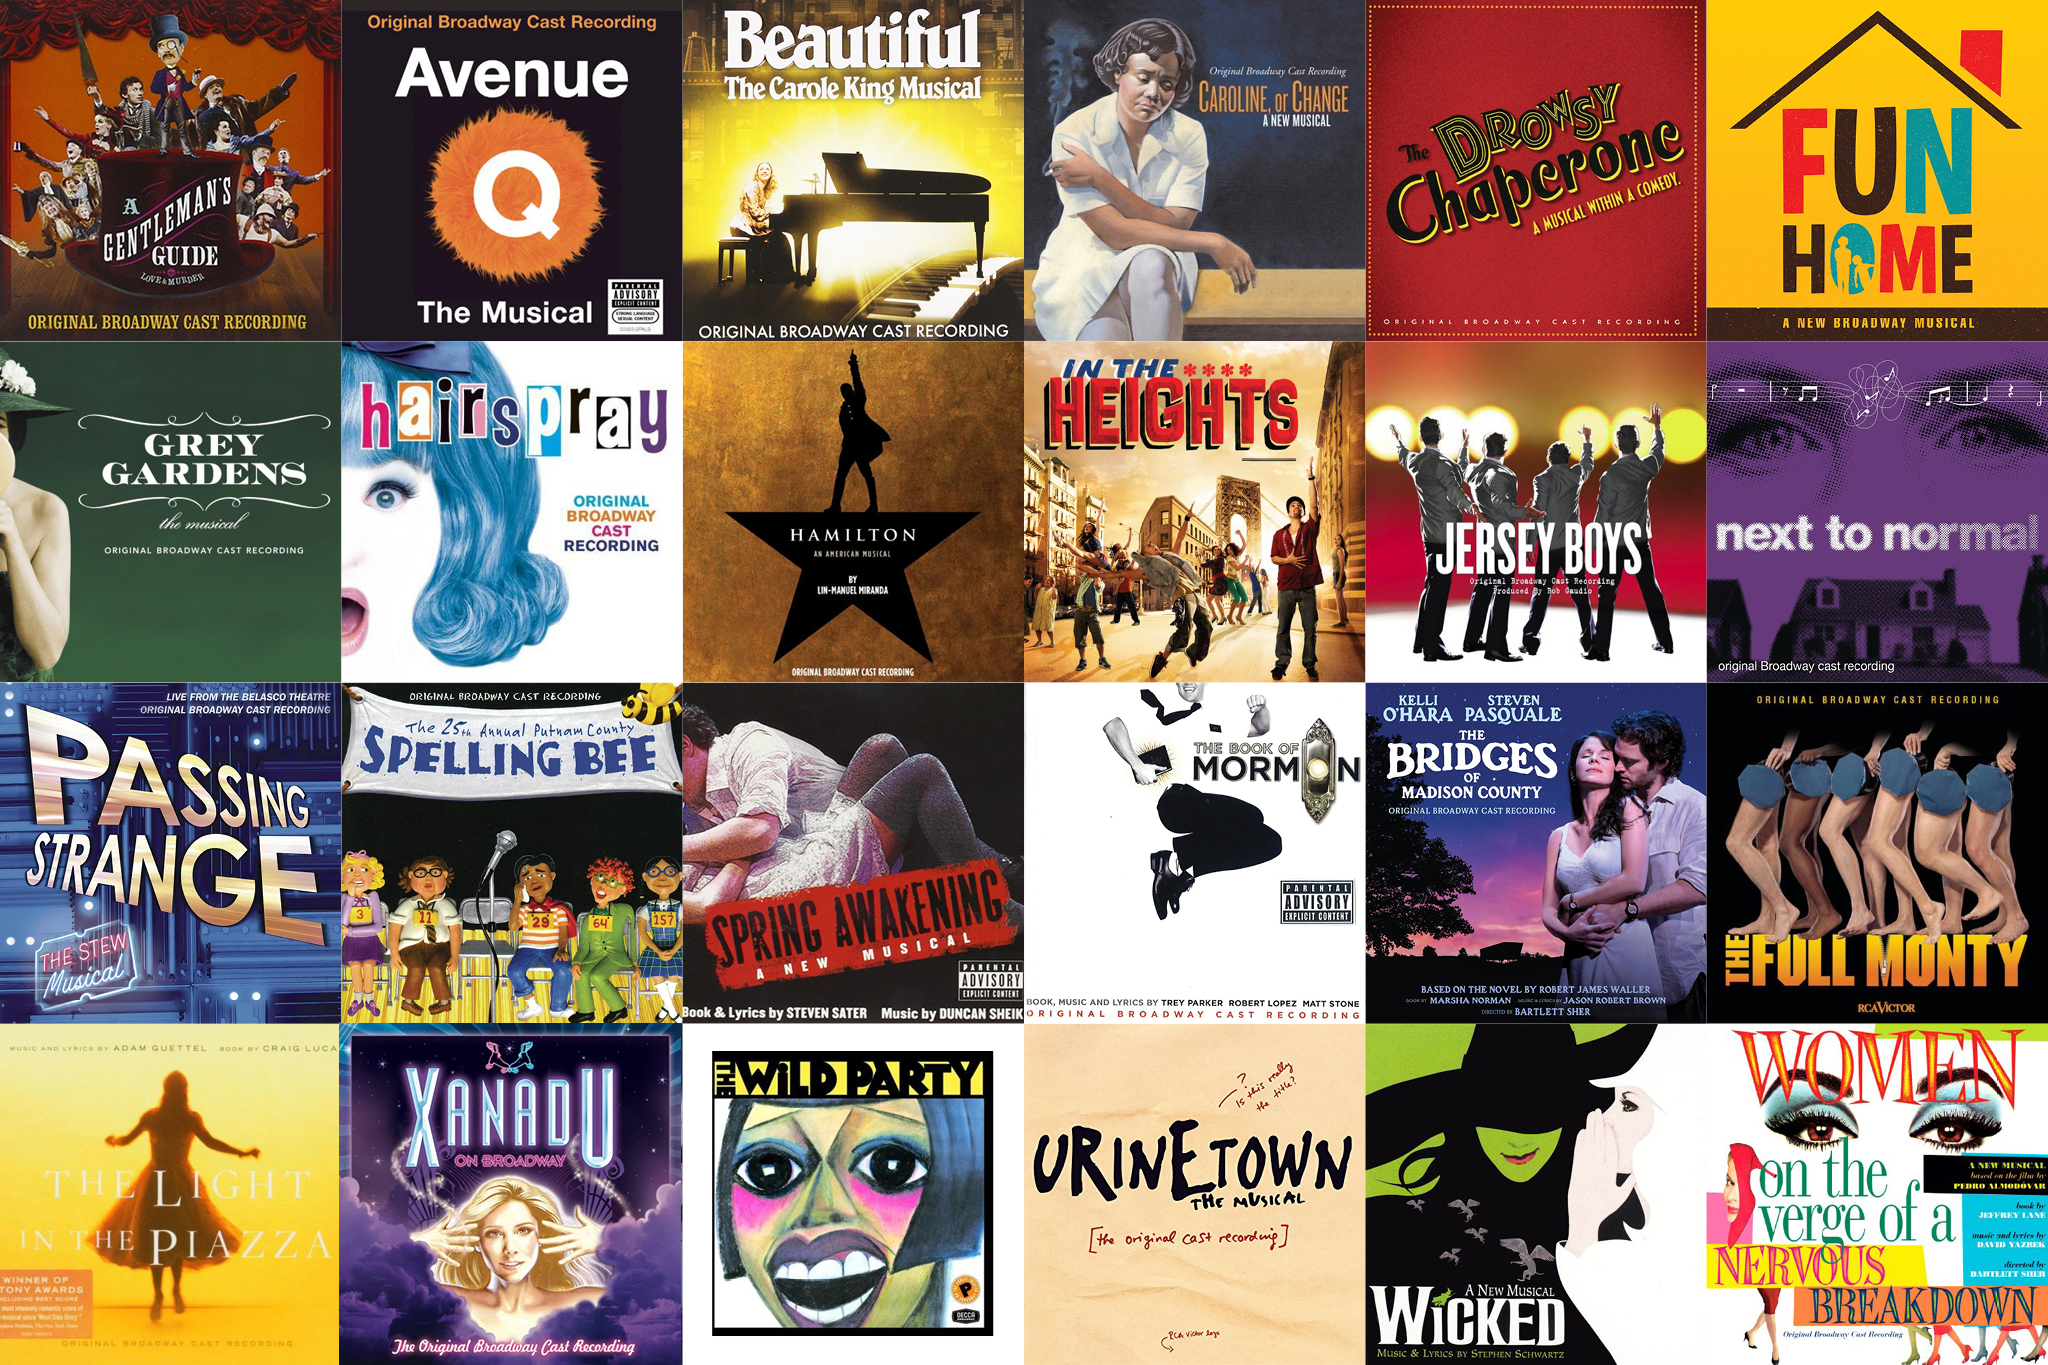 Current Broadway Shows With Kids